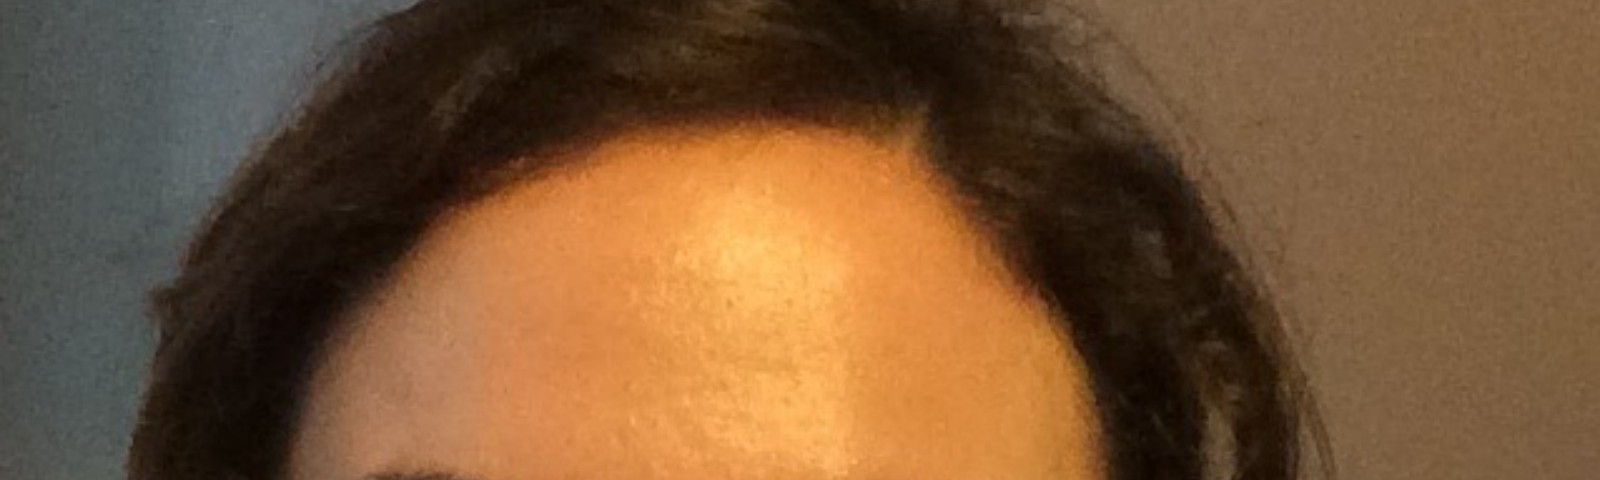 Vanity And Chemo Cancer Cant Take My Eyebrows Ending My Twenties